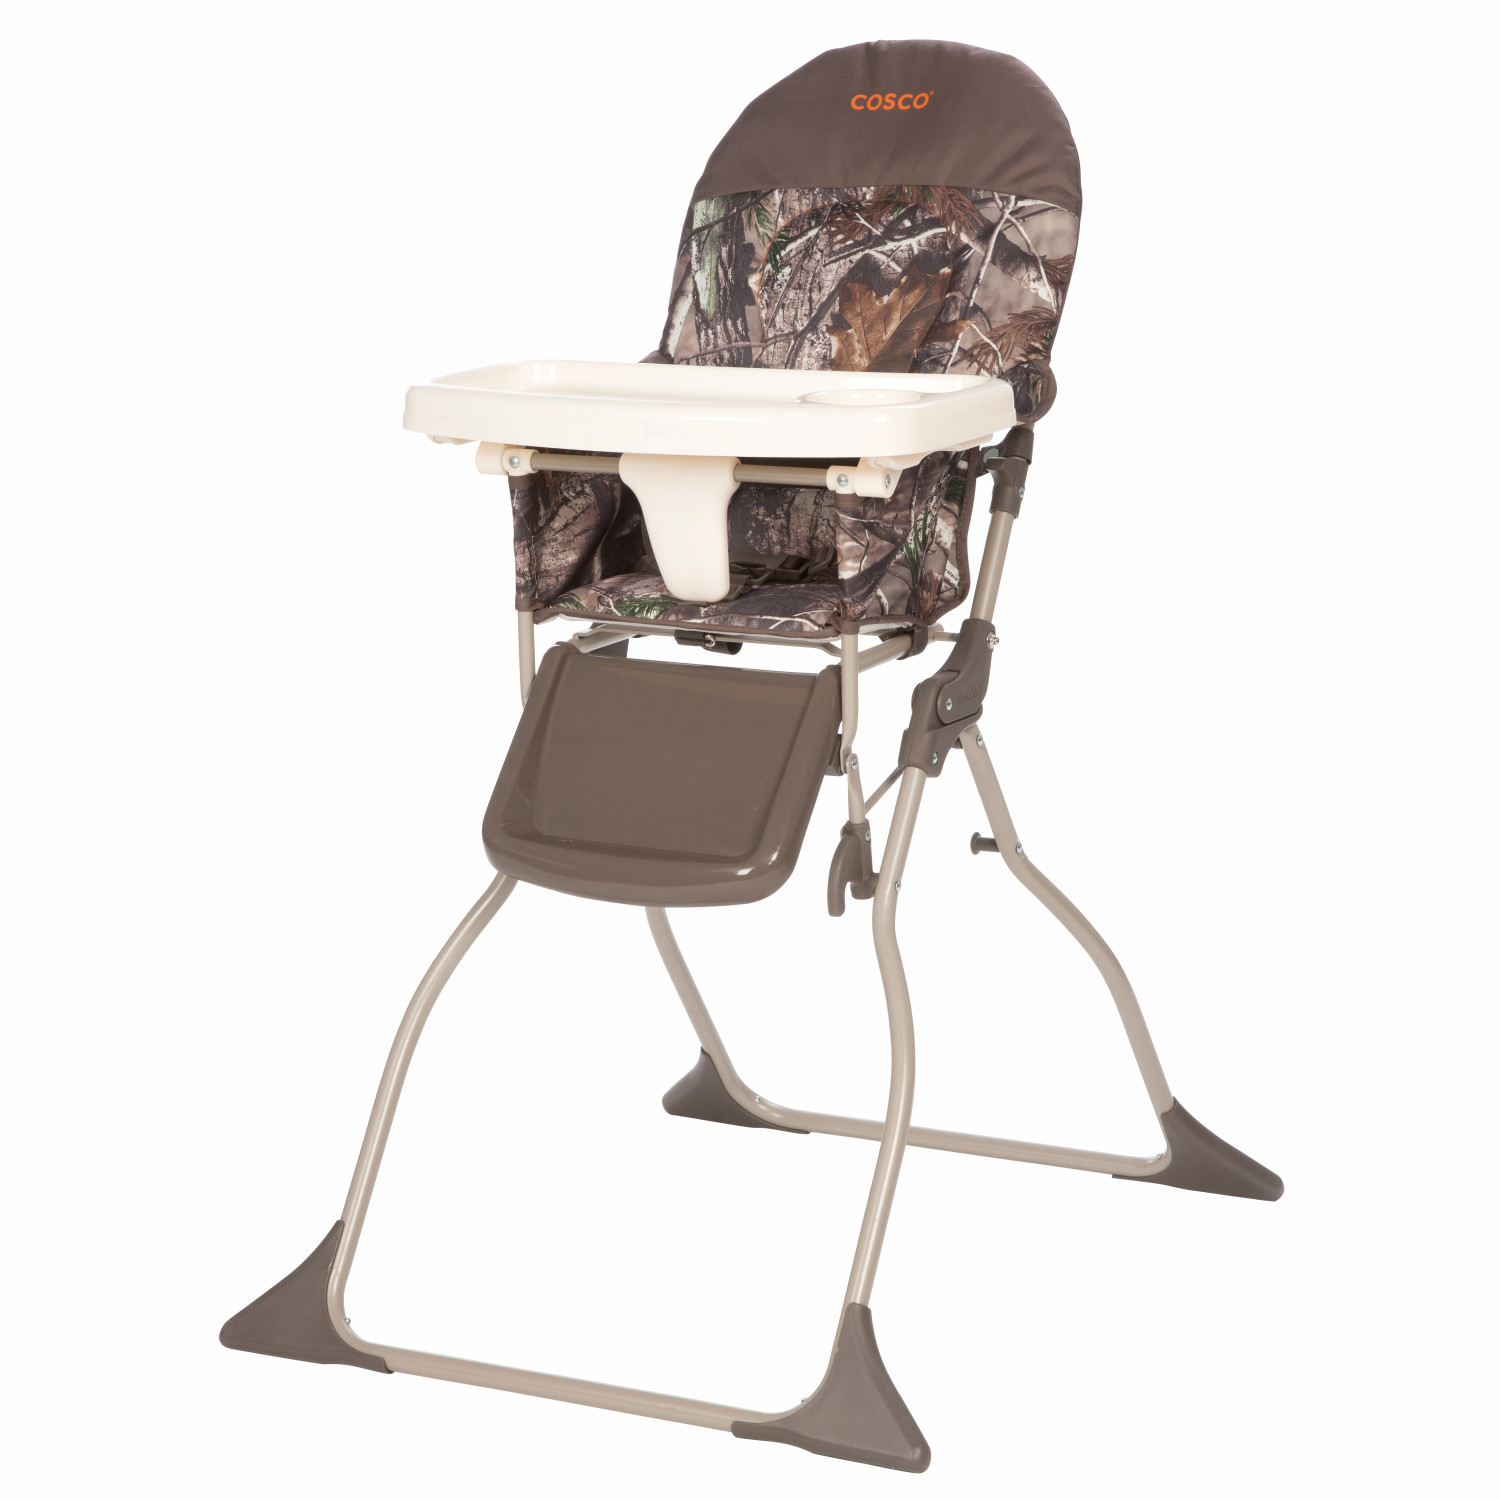 Realtree Chair Cosco Simple Fold High Chair Realtree Ebay